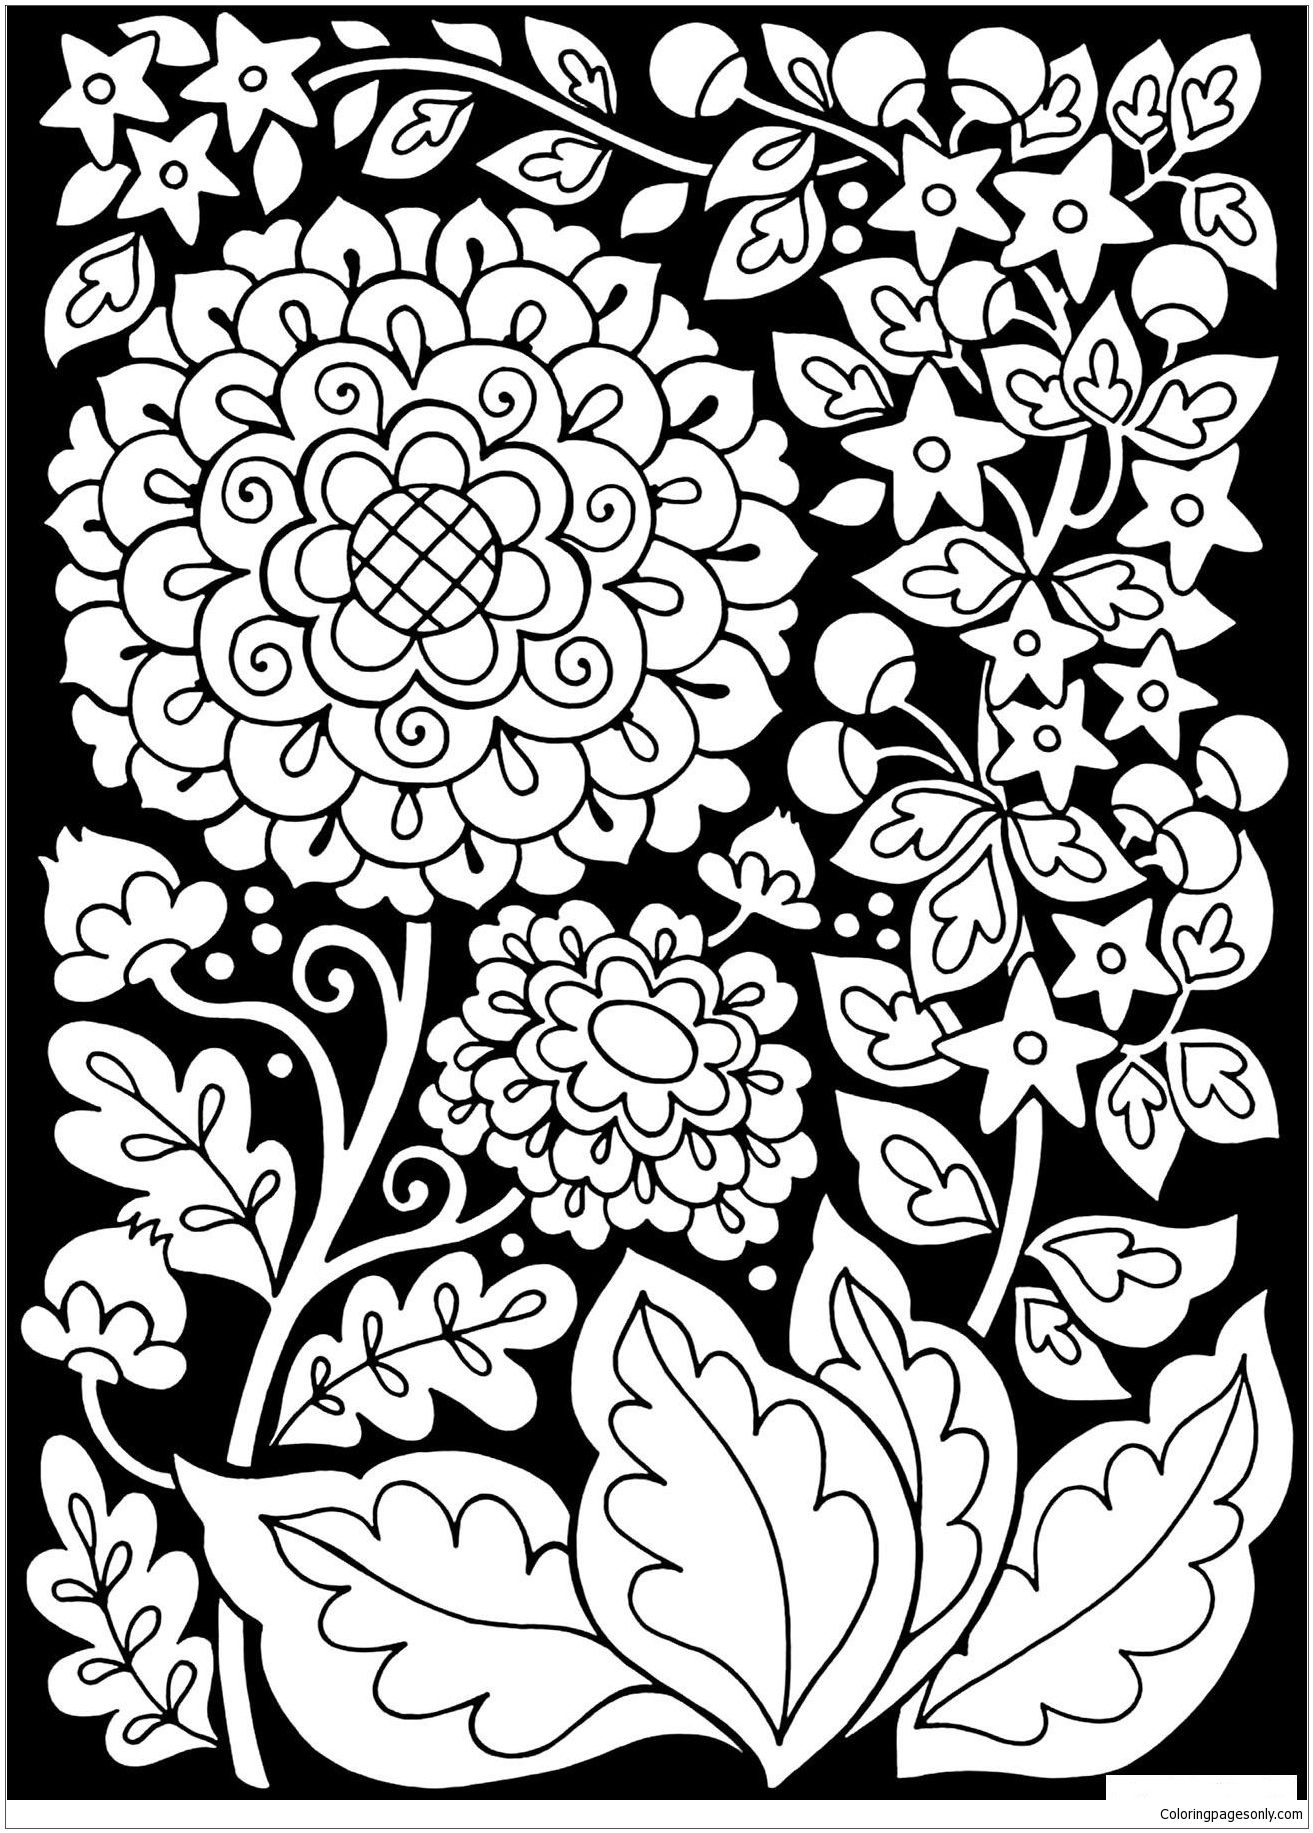 Black Background With Flowers Coloring Page - Free Coloring Pages Online